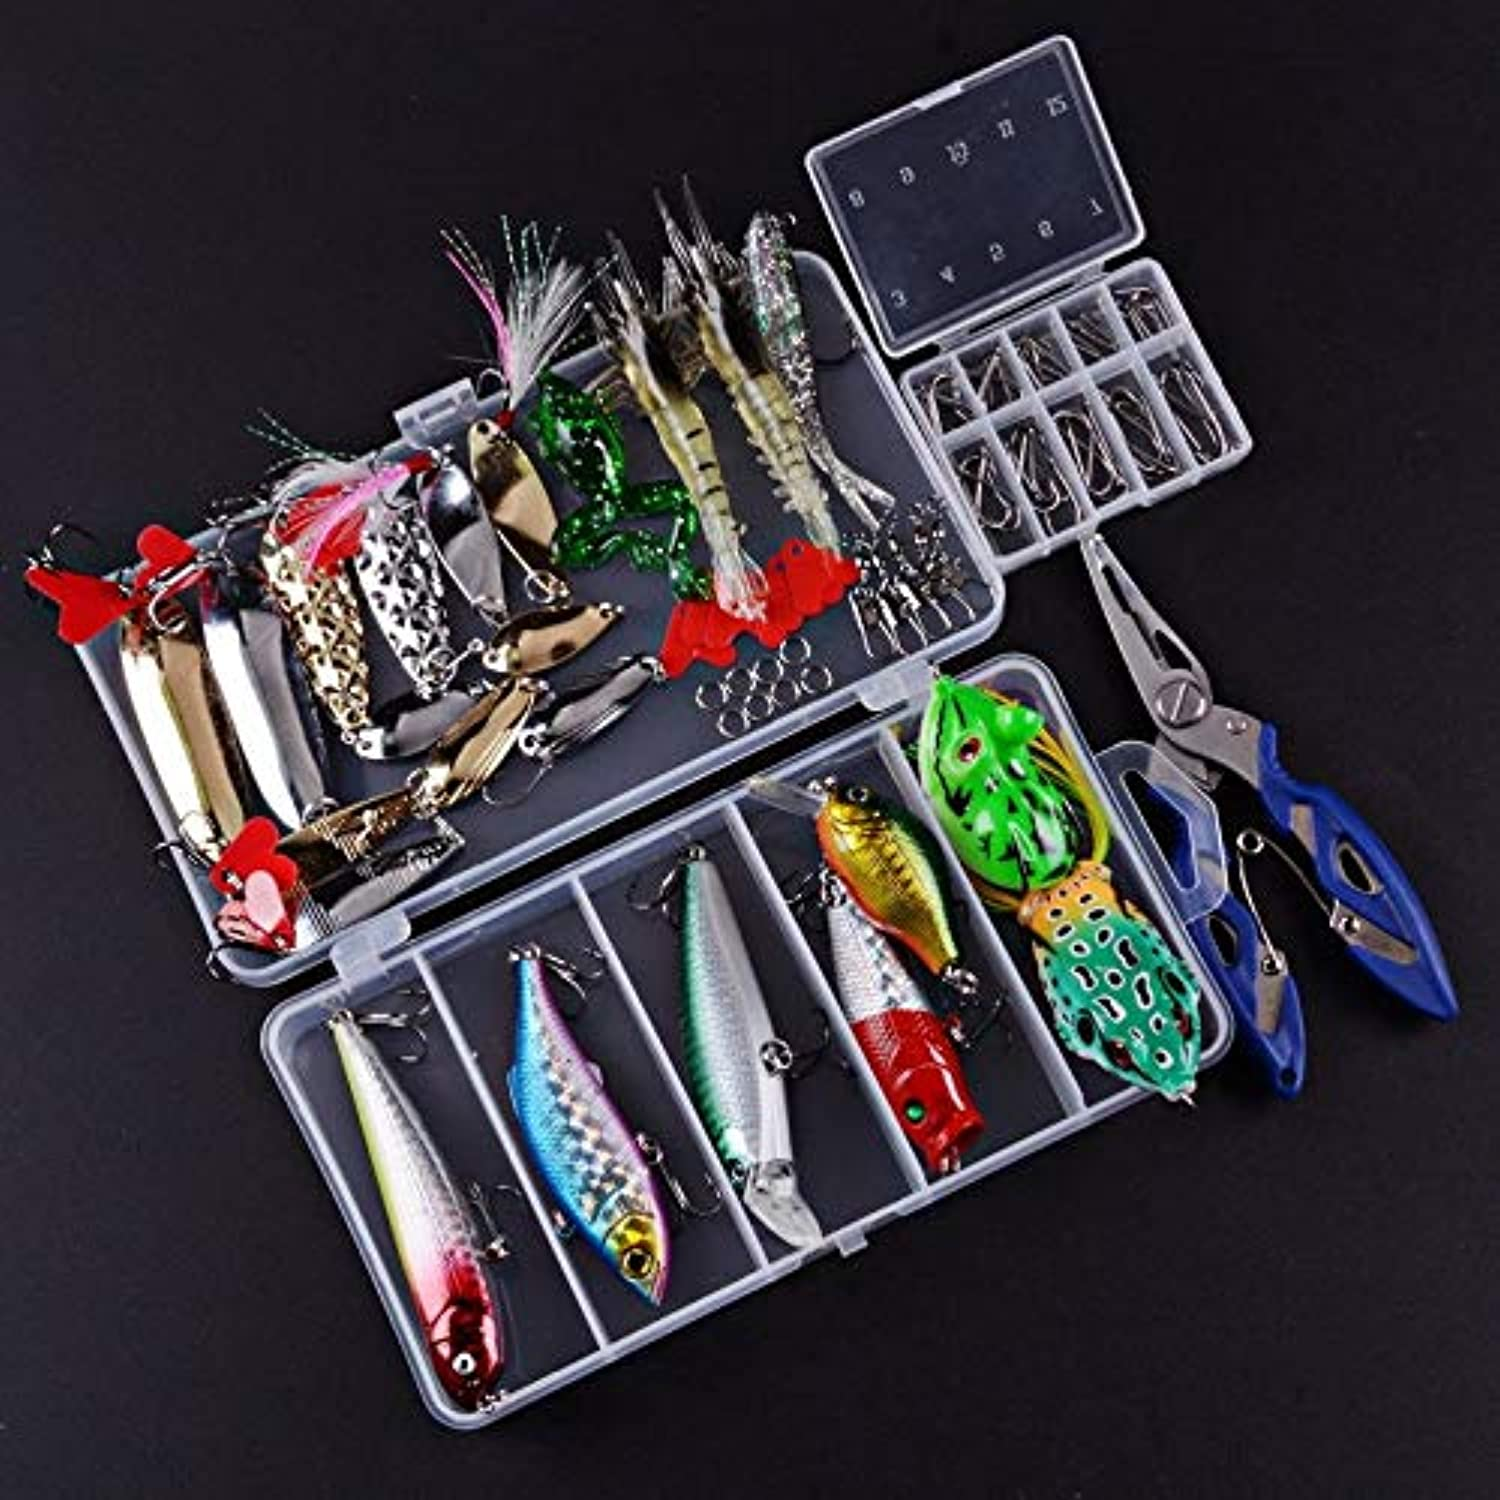 Generic Fishing Lure Kit Complete Set with Hard Lures Soft Bait Accessories Case Minnow Crank Popper Swivel Mixed 93pcs LS0013